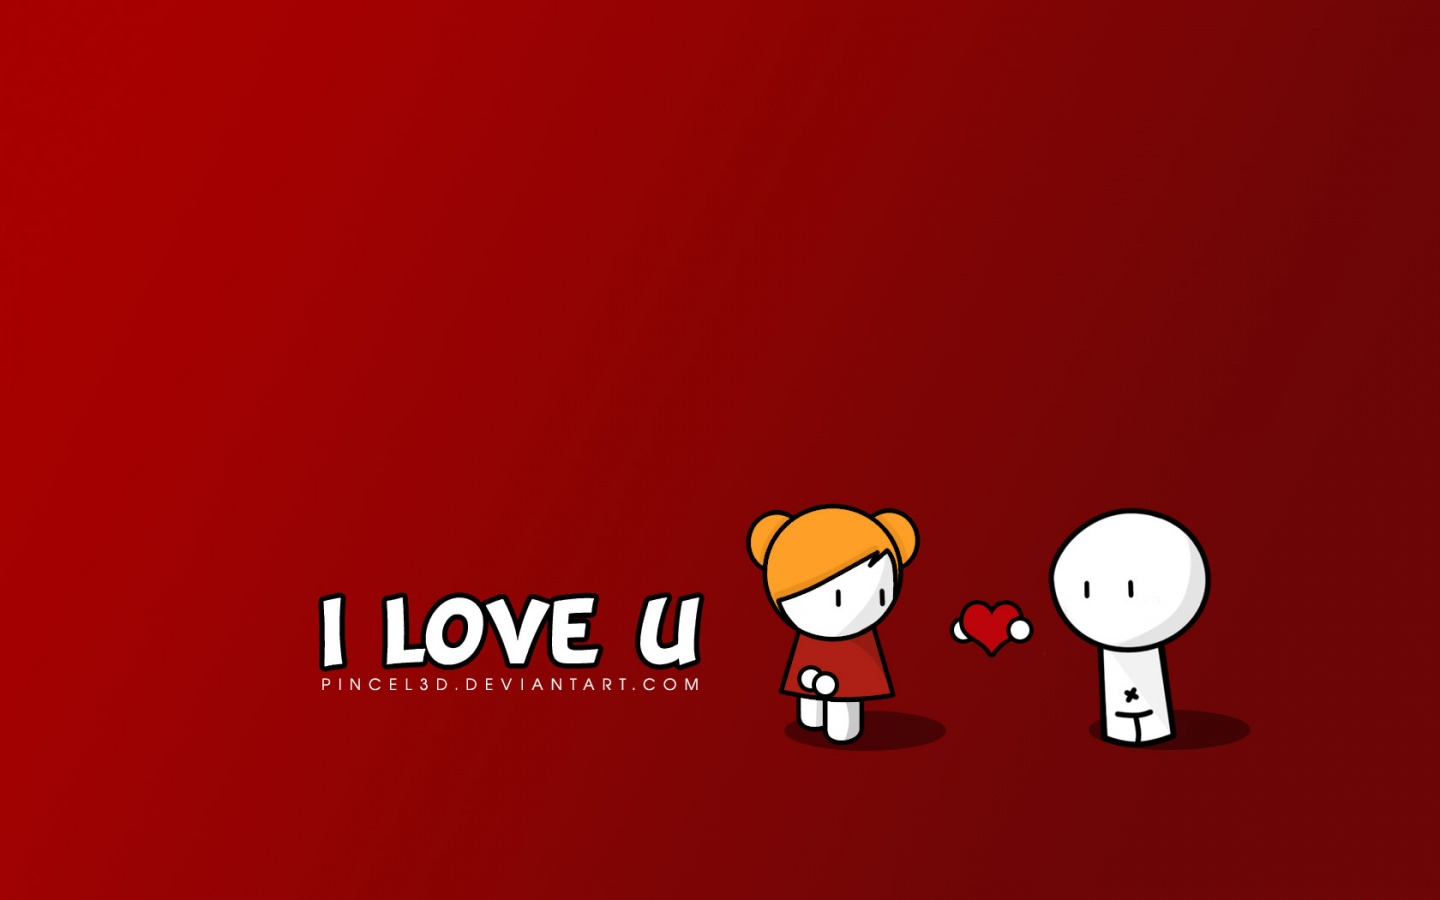 1440x900 I Love U desktop PC and Mac wallpaper